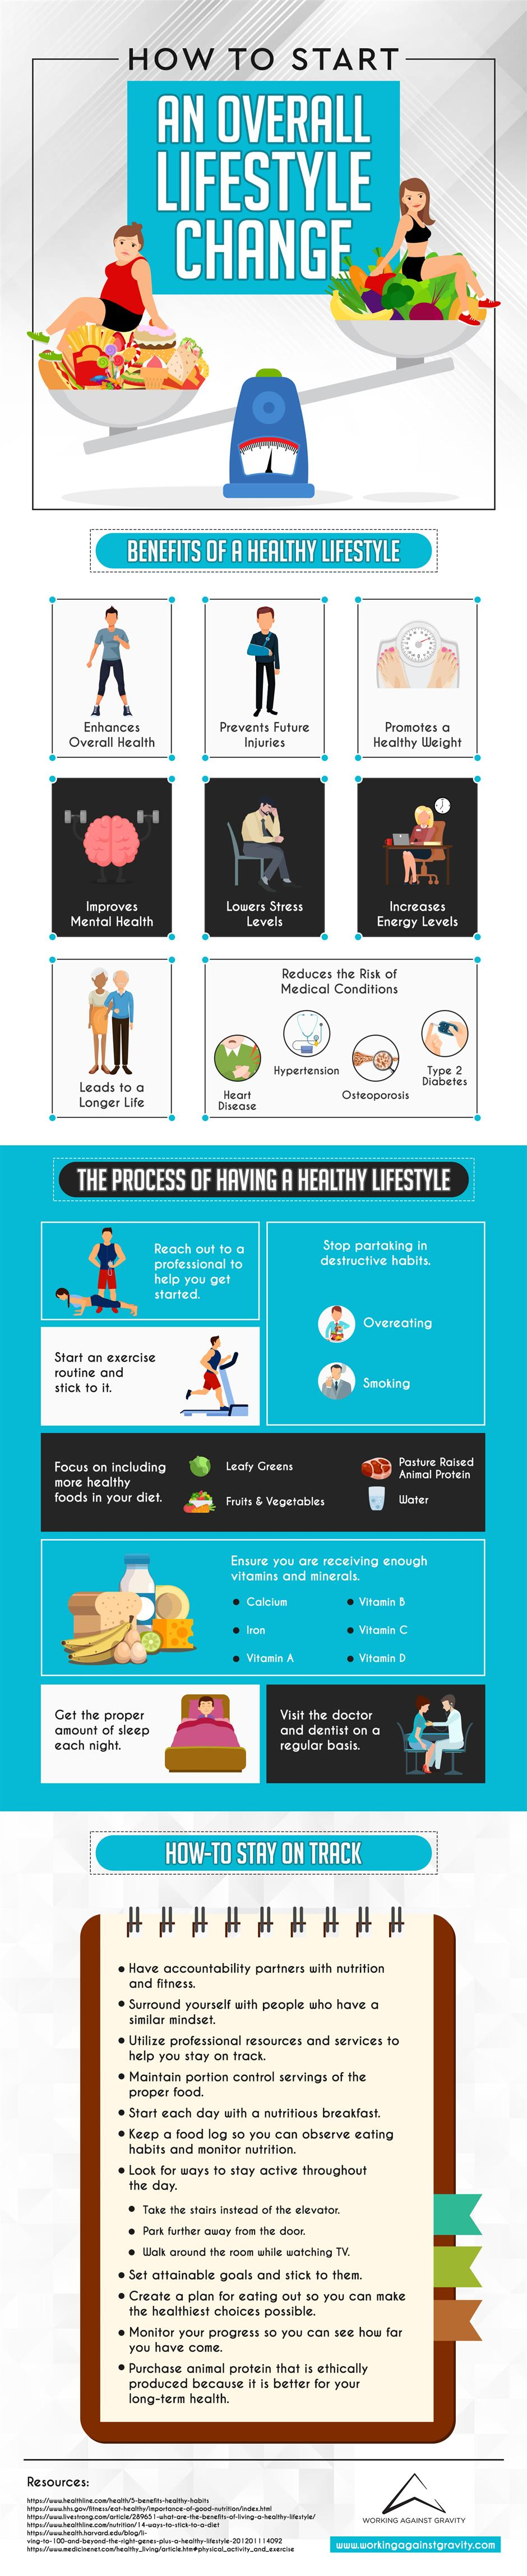 How to Reclaim a Healthy Lifestyle - Infographic